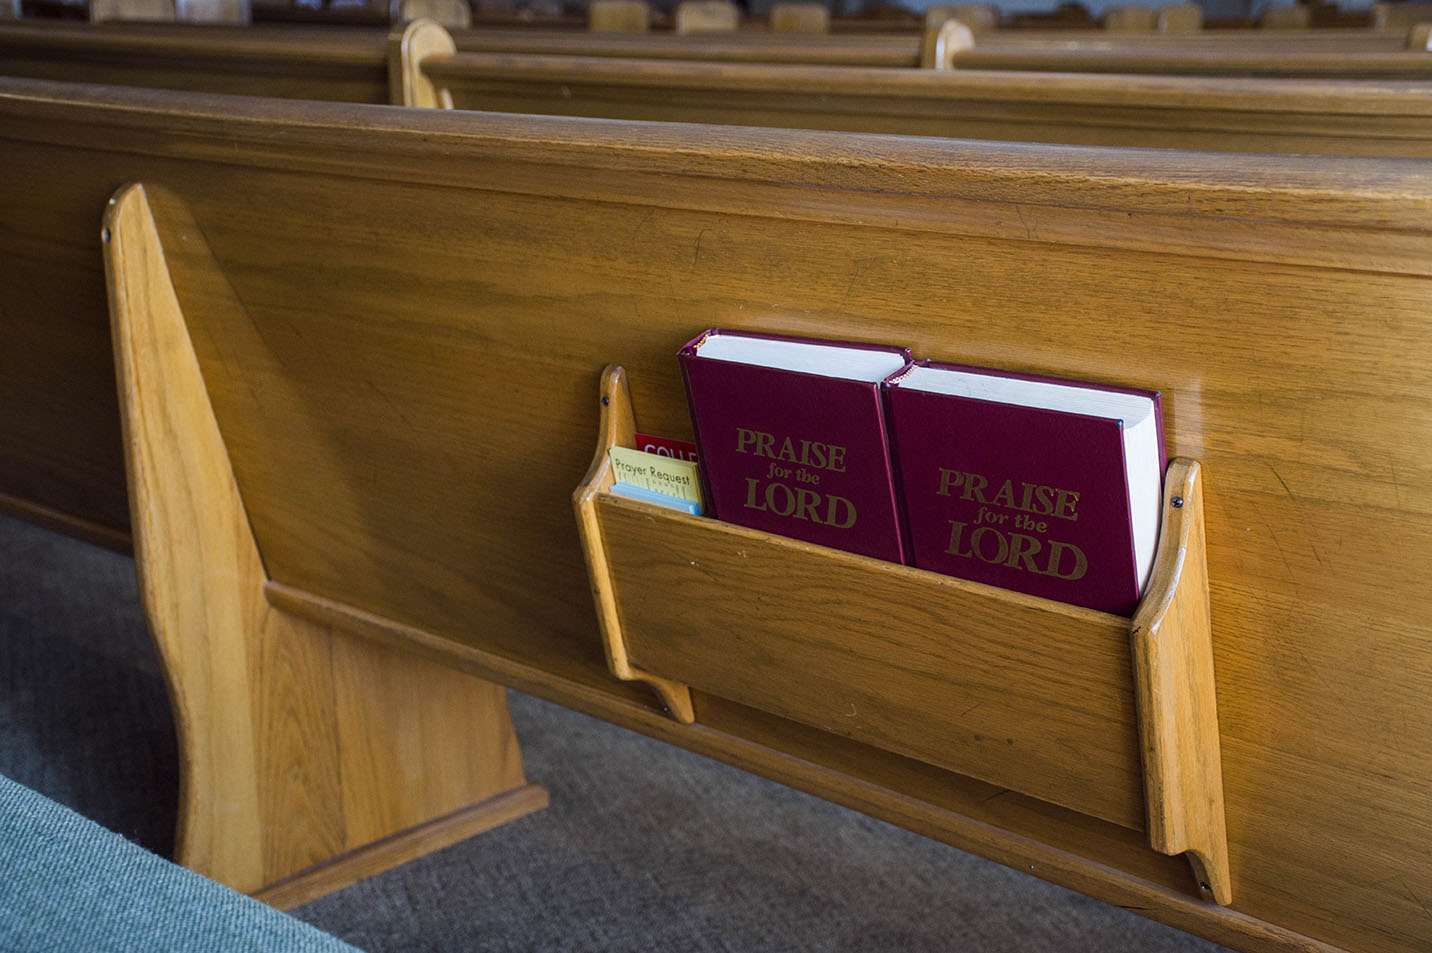 This is a photo of songbooks in a shelf behind a church pew.